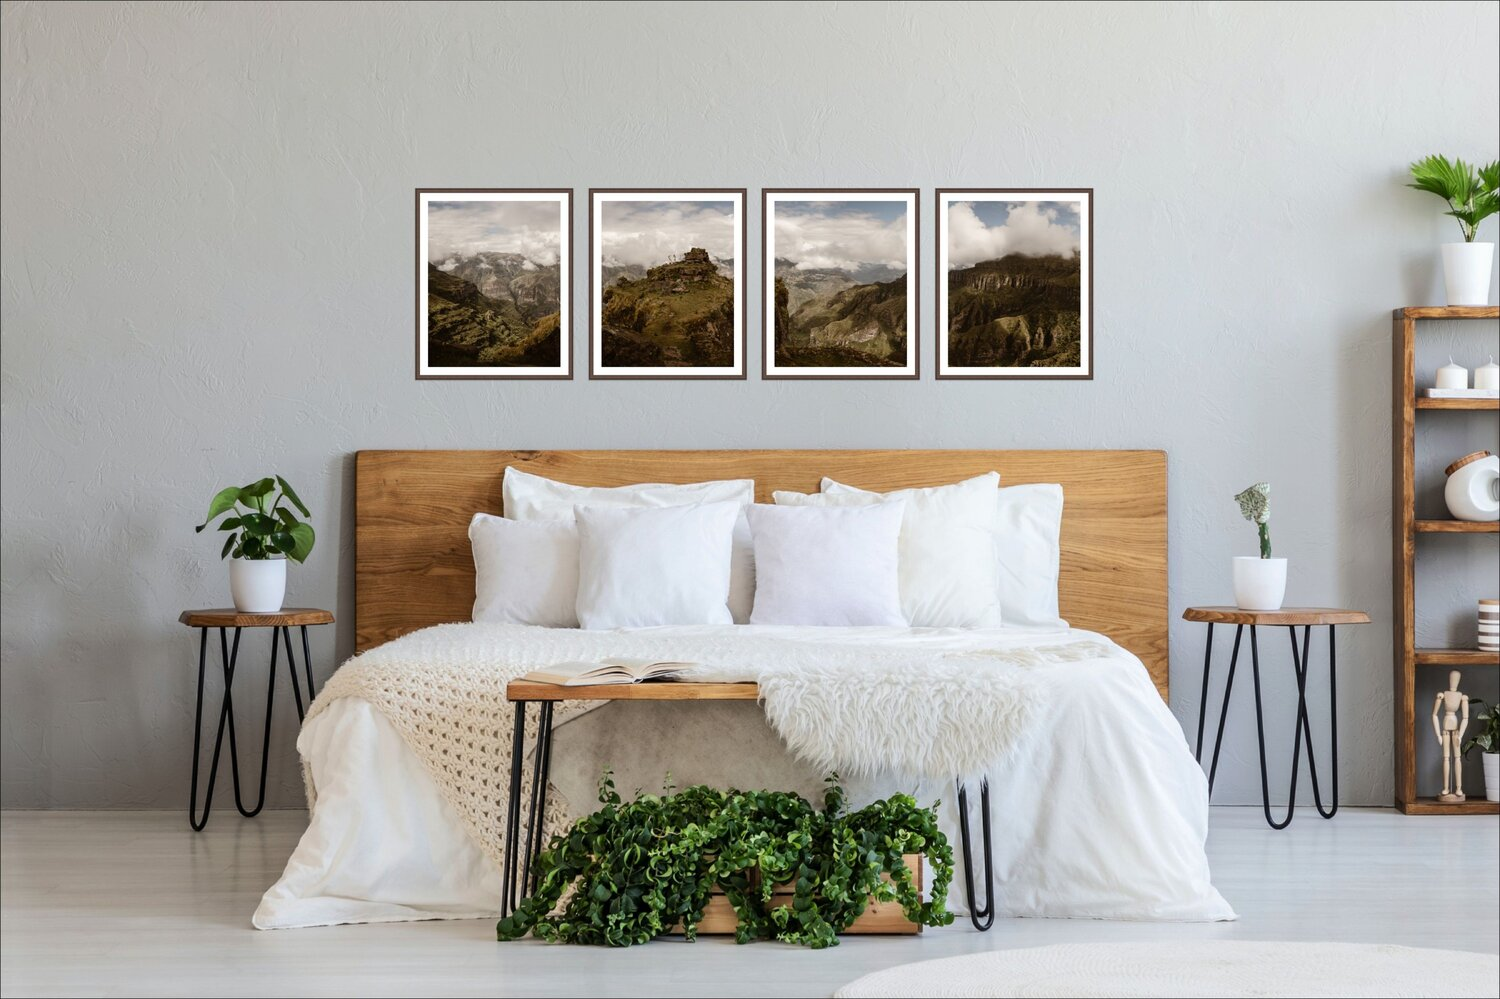 A bedroom with four wedding photos hanging above the bed.